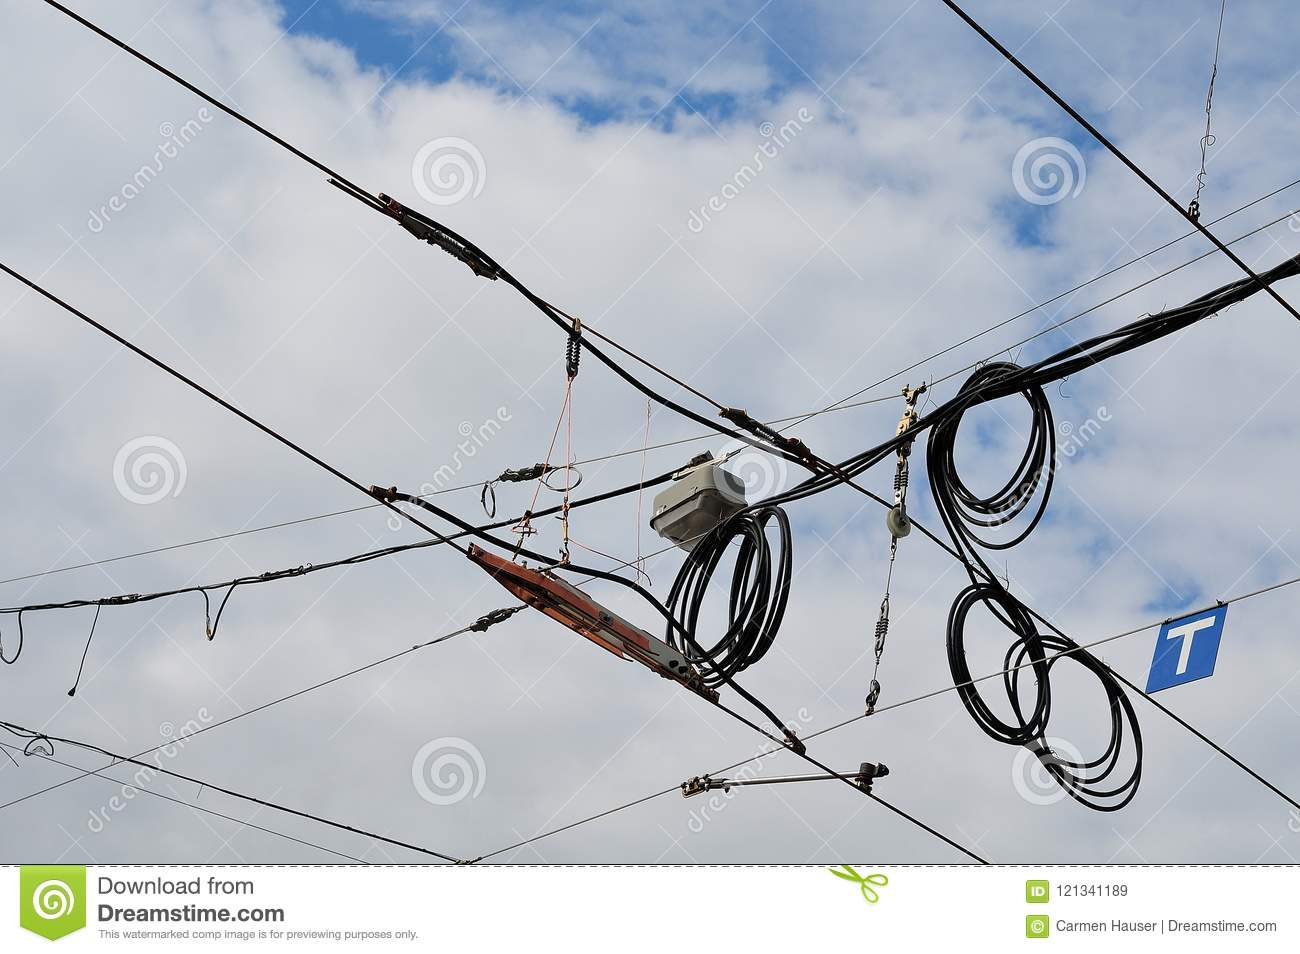 Contact lines for tramway stock image  Image of distribution